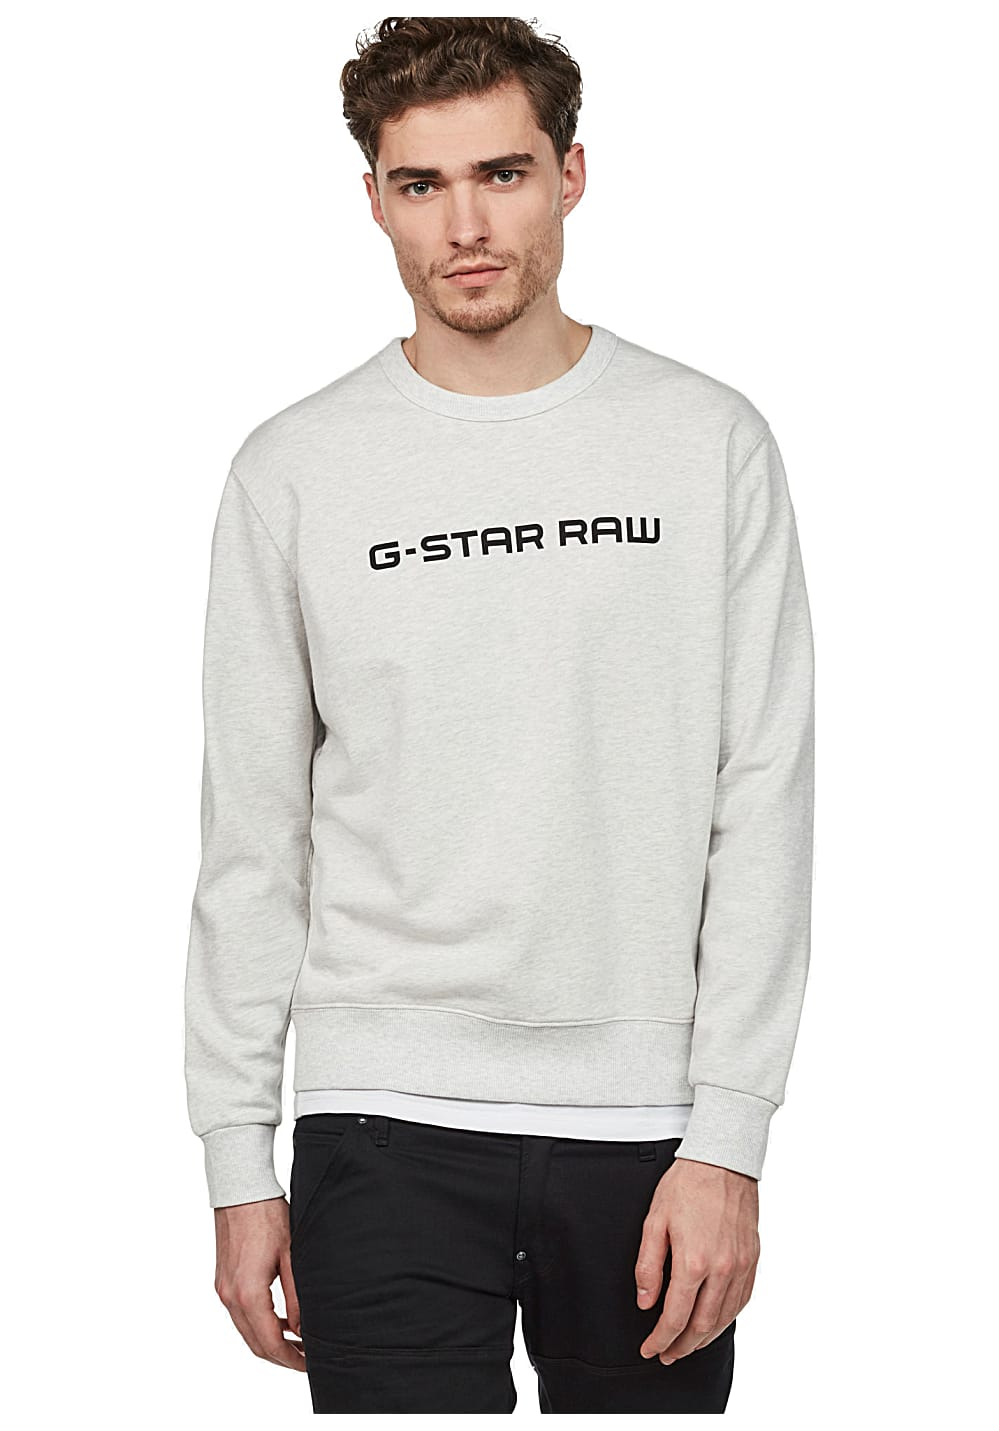 G R Star Homme Loaq Sports Blanc Sweat Pour Planet HqBUHxZr